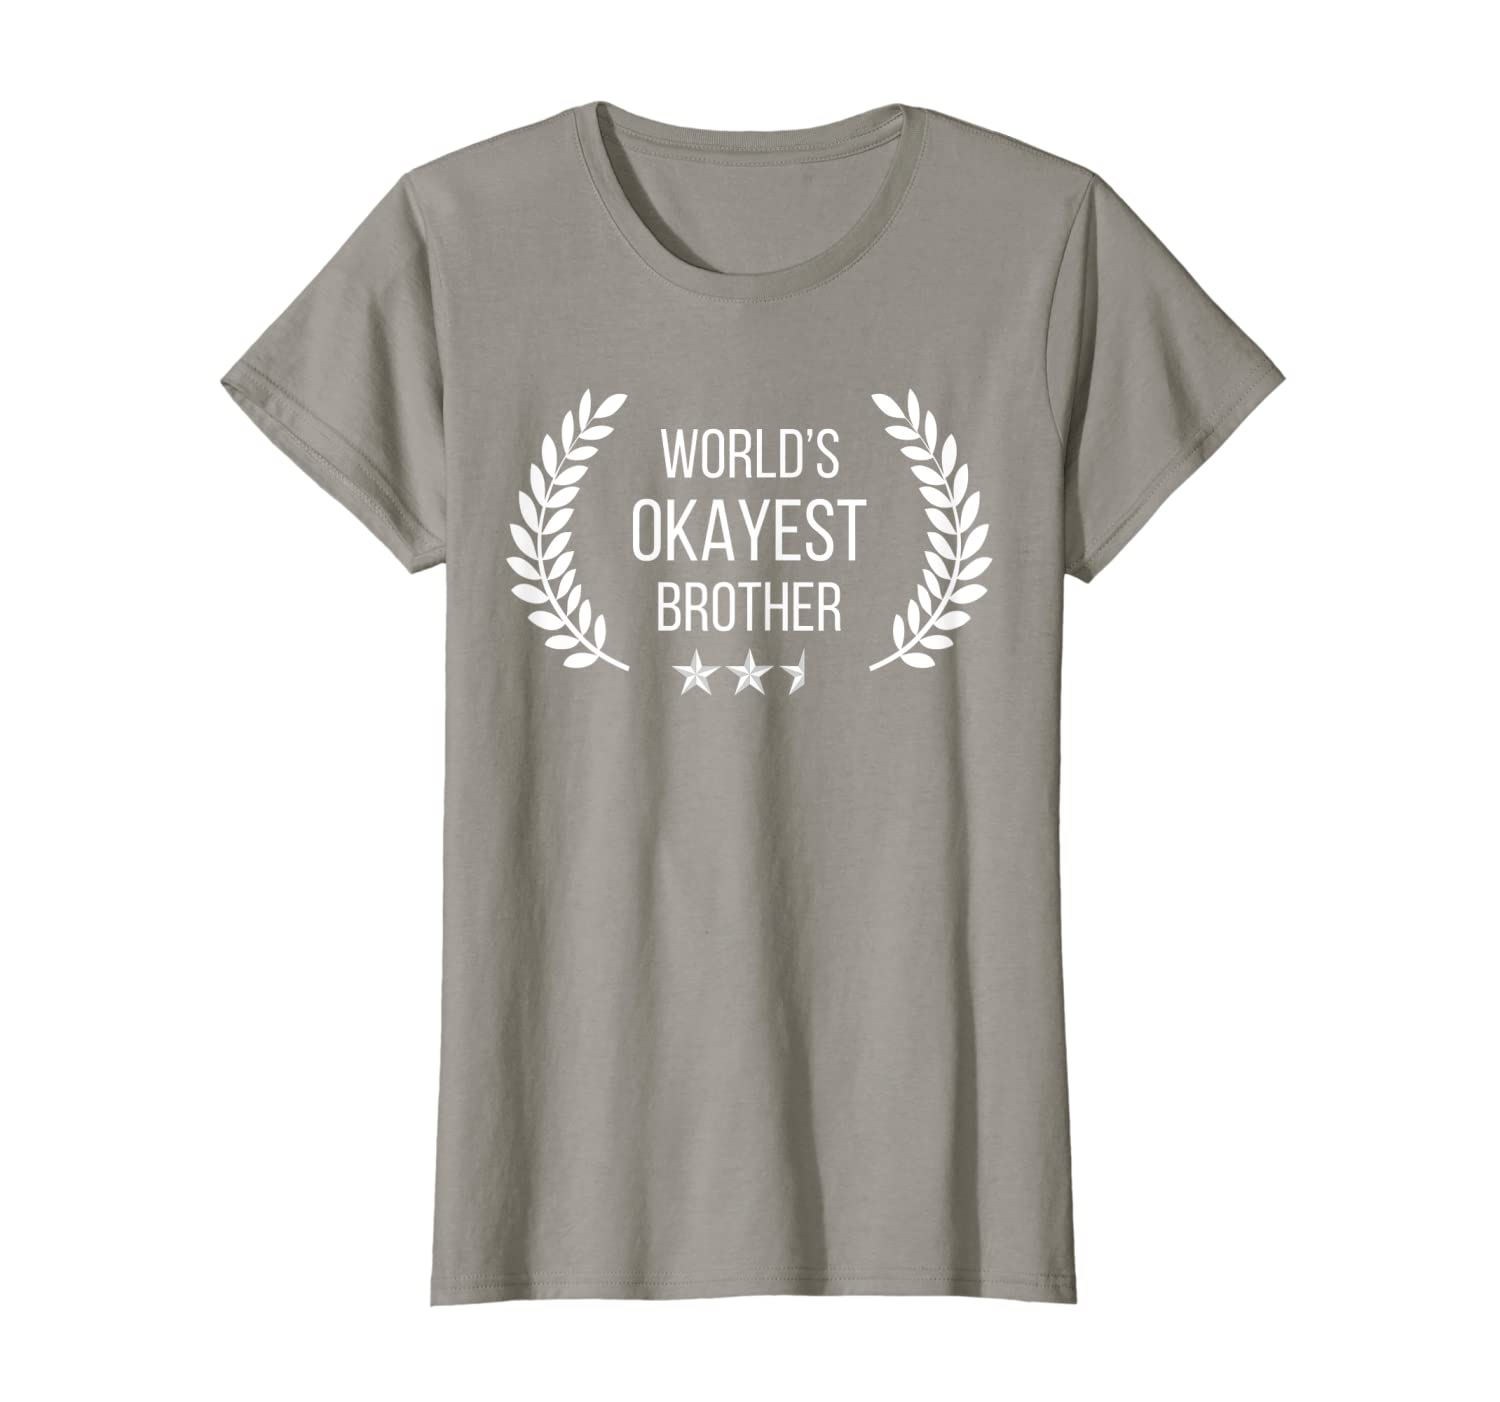 d289e69d Amazon.com: Funny T Shirts - World's Okayest Brother Shirt Sibling Shirt:  Clothing